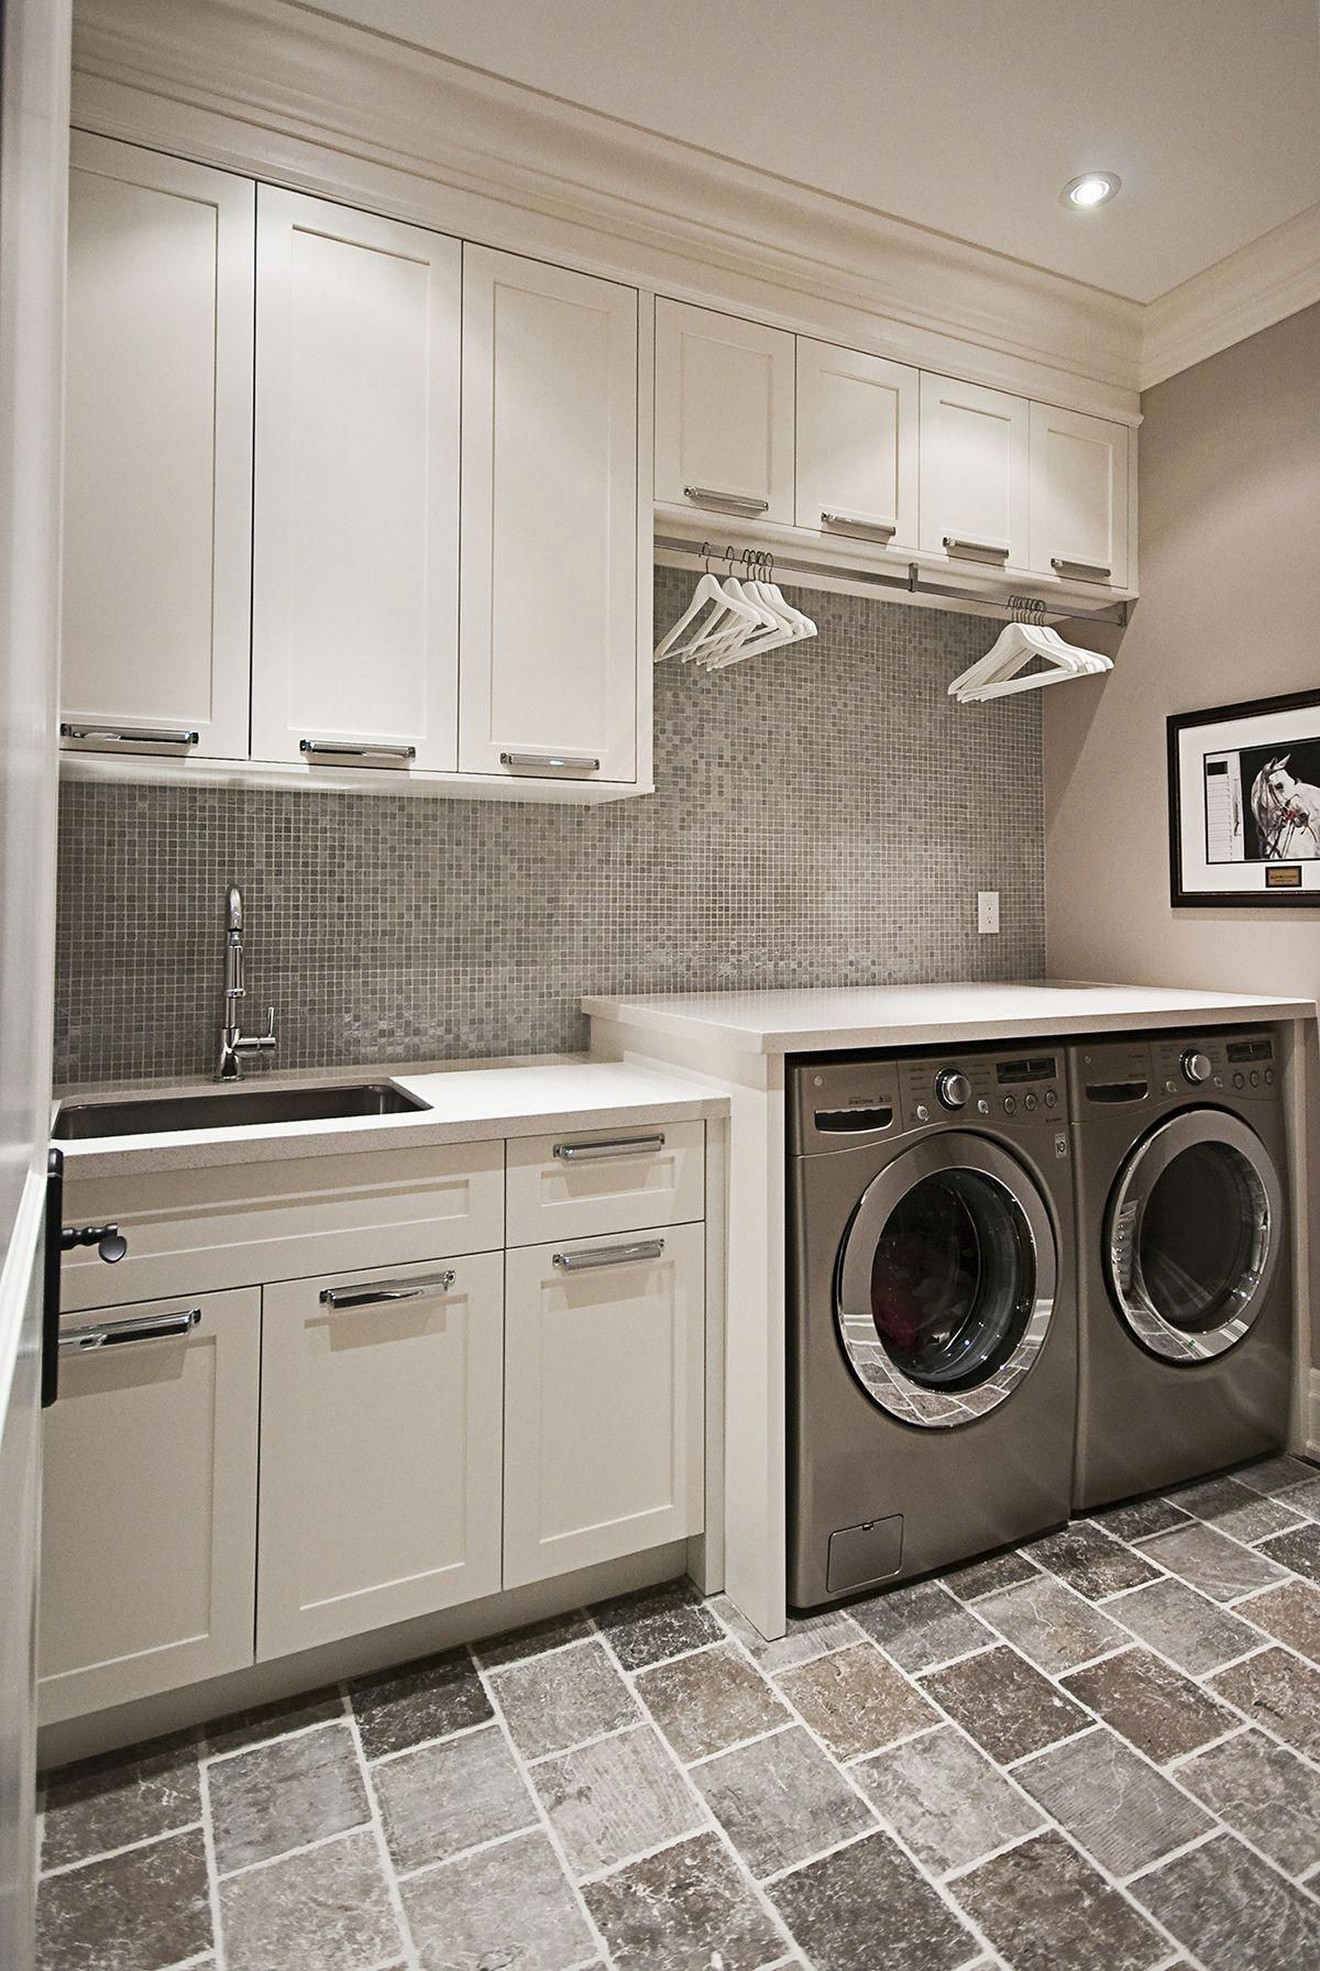 72 Laundry Room Cabinets All You Need To Know 13